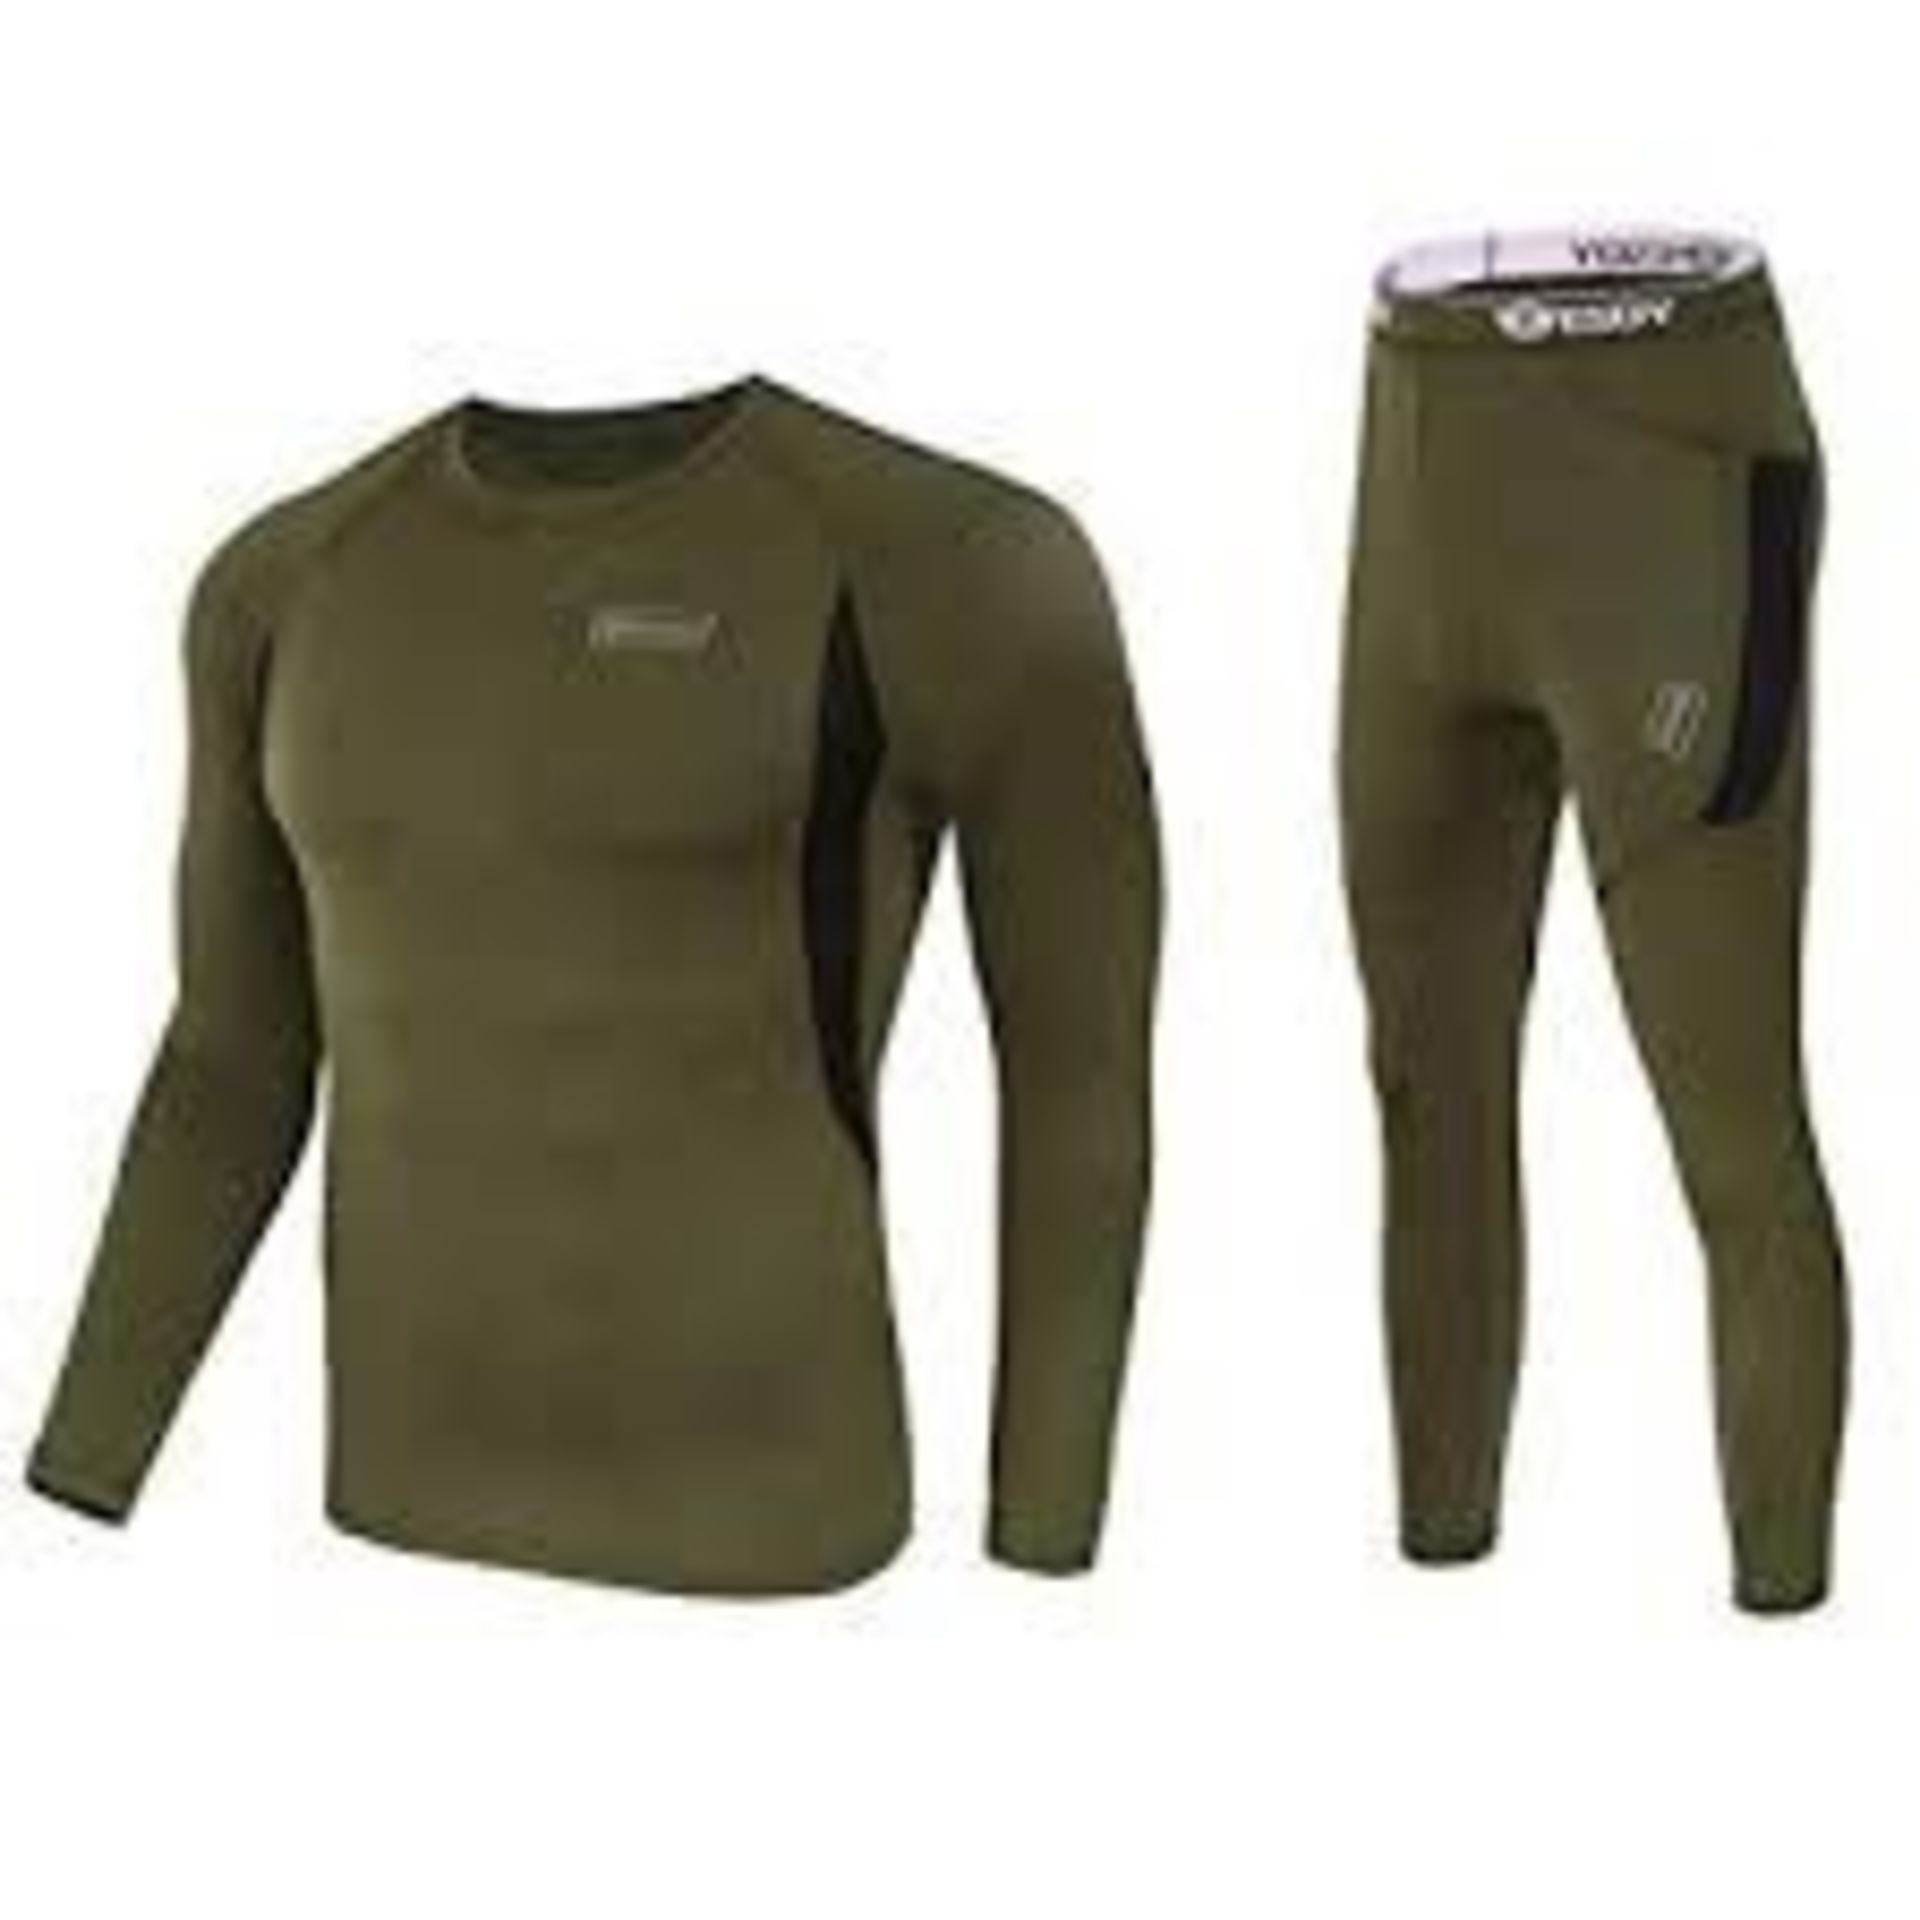 Lot 909 - Brand New ESDY Black and Khaki Thermal Gents Under Garments